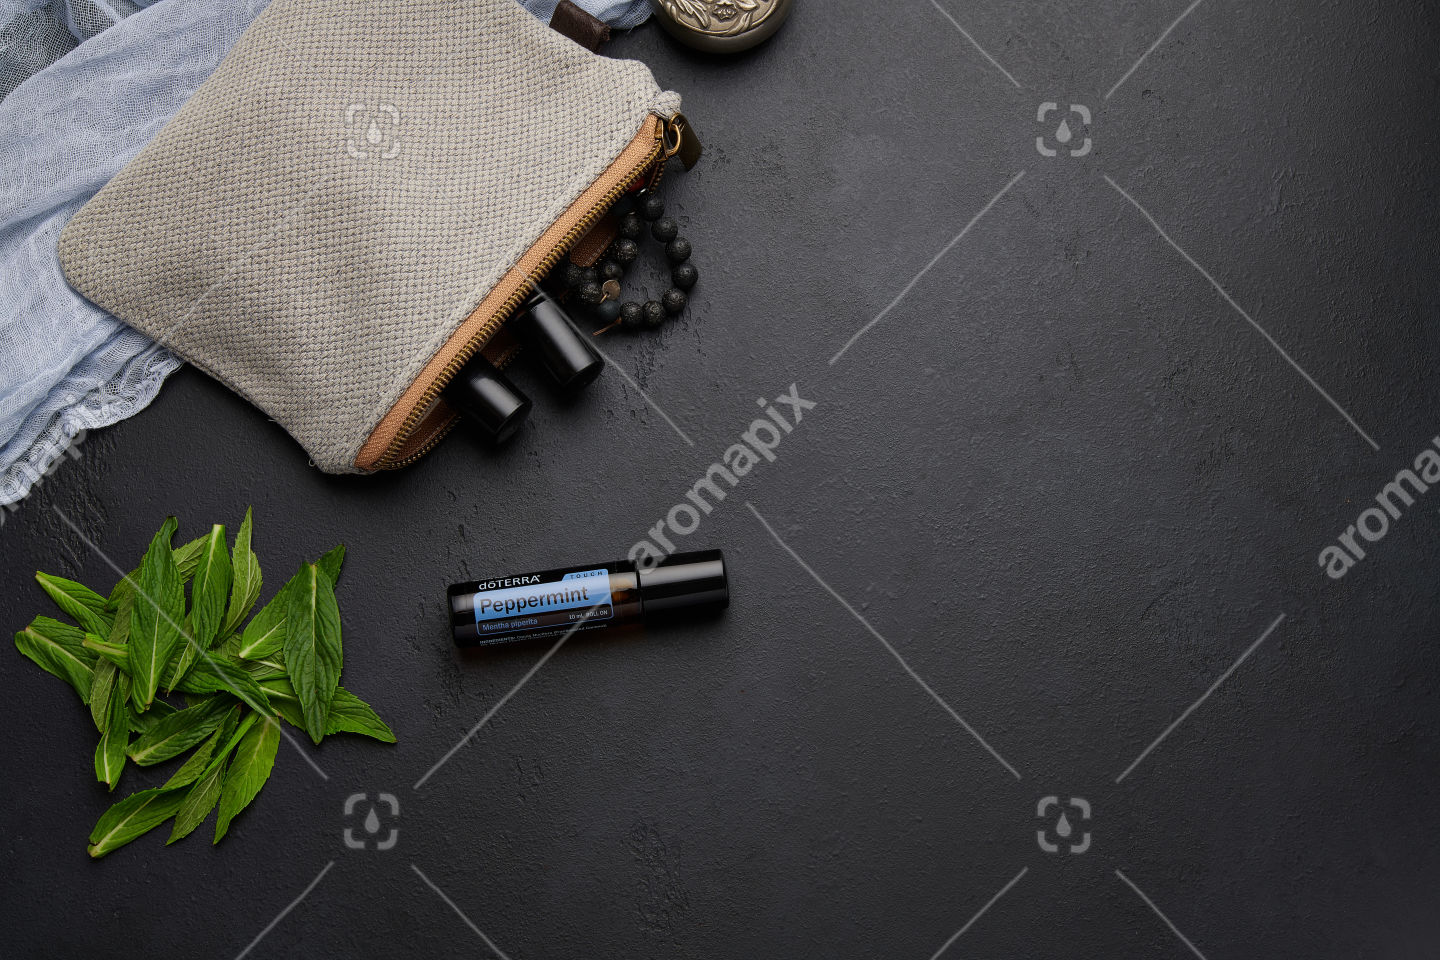 doTERRA Peppermint Touch with mint leaves on black